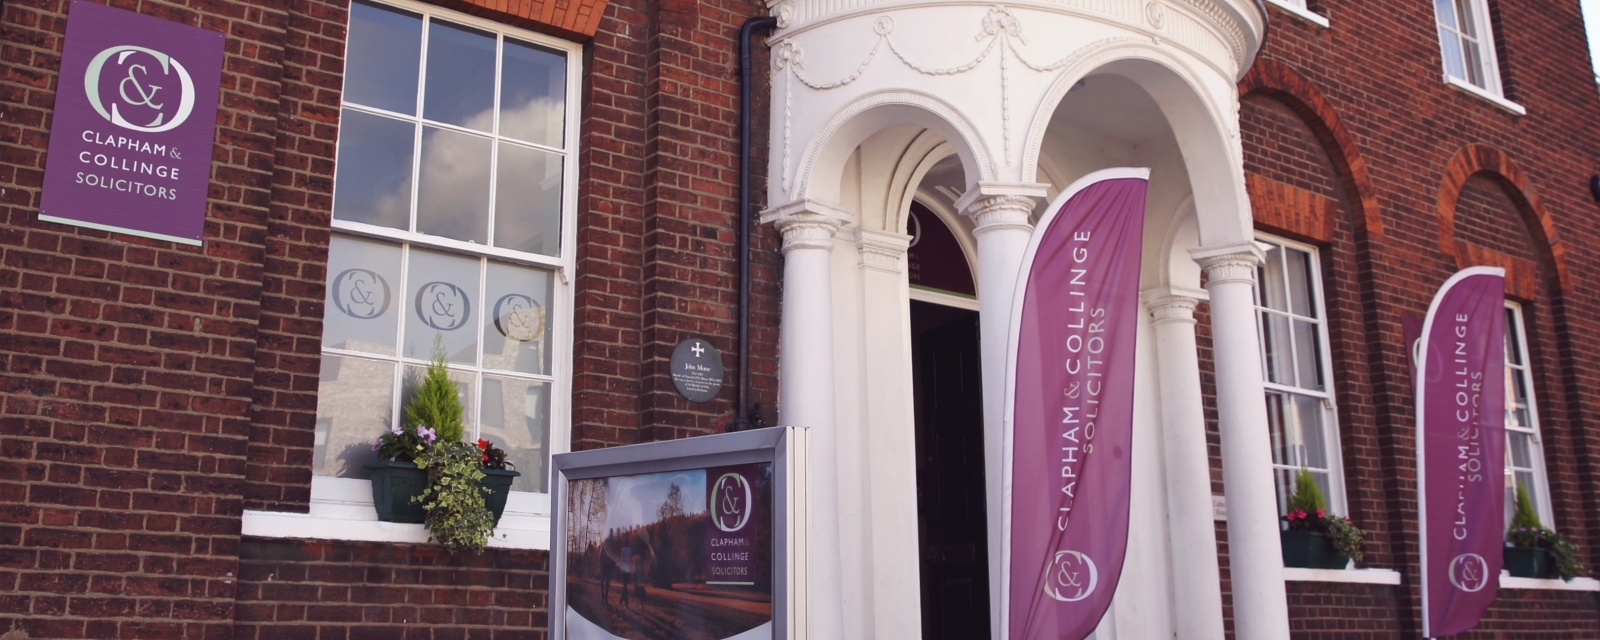 Clapham & Collinge - Independent Solicitors in Norwich, North Walsham, and Sheringham.